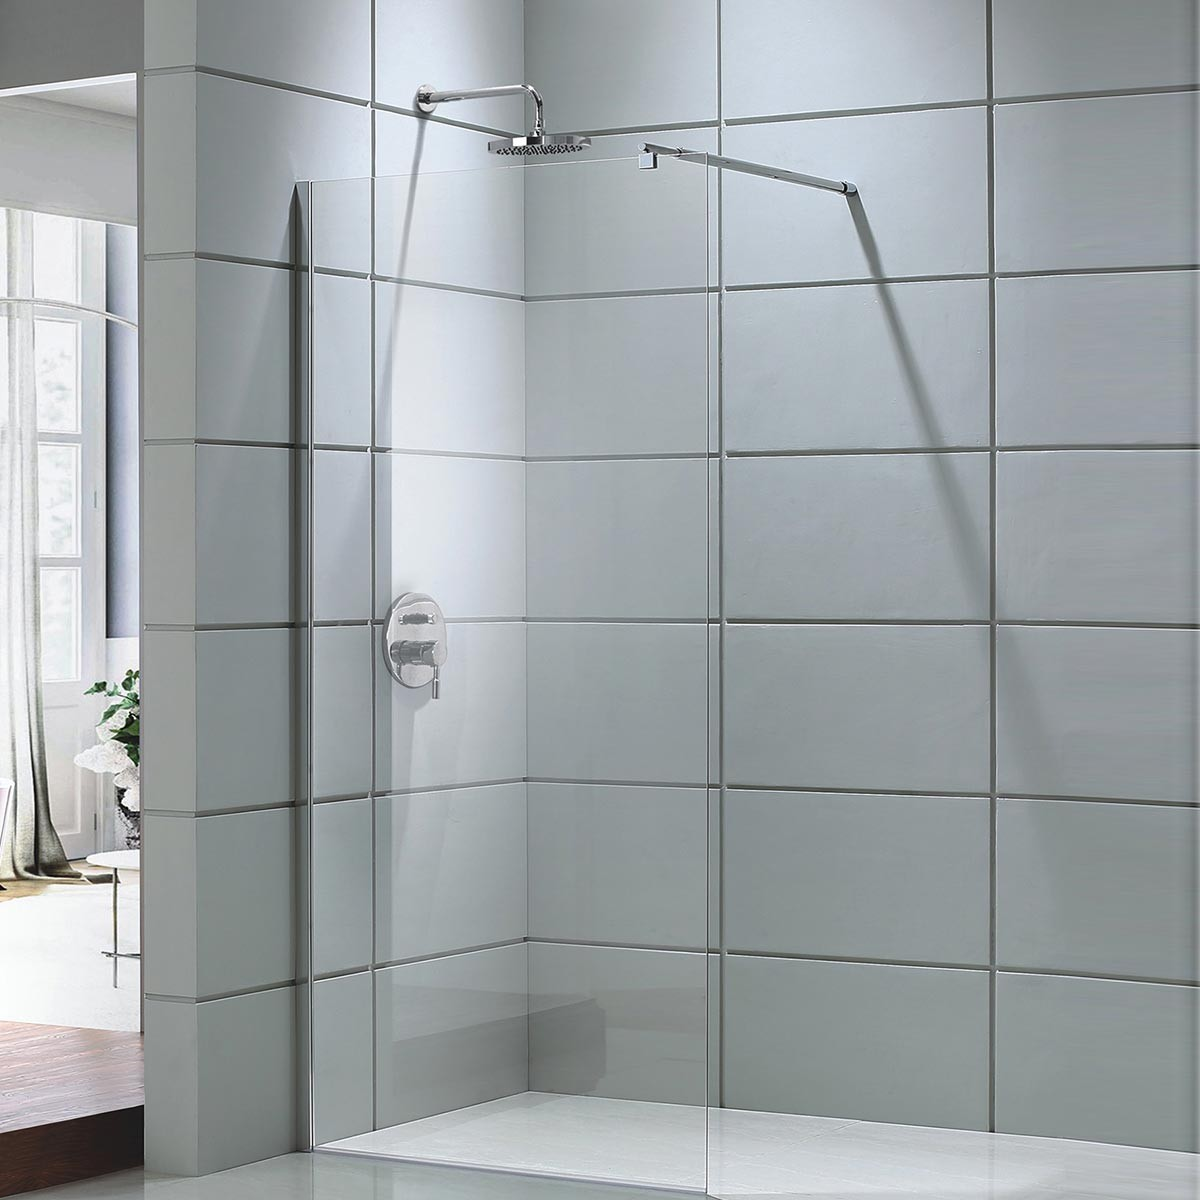 39 x 75 In. Walk-in Frameless Shower Door (DK-D201-100)